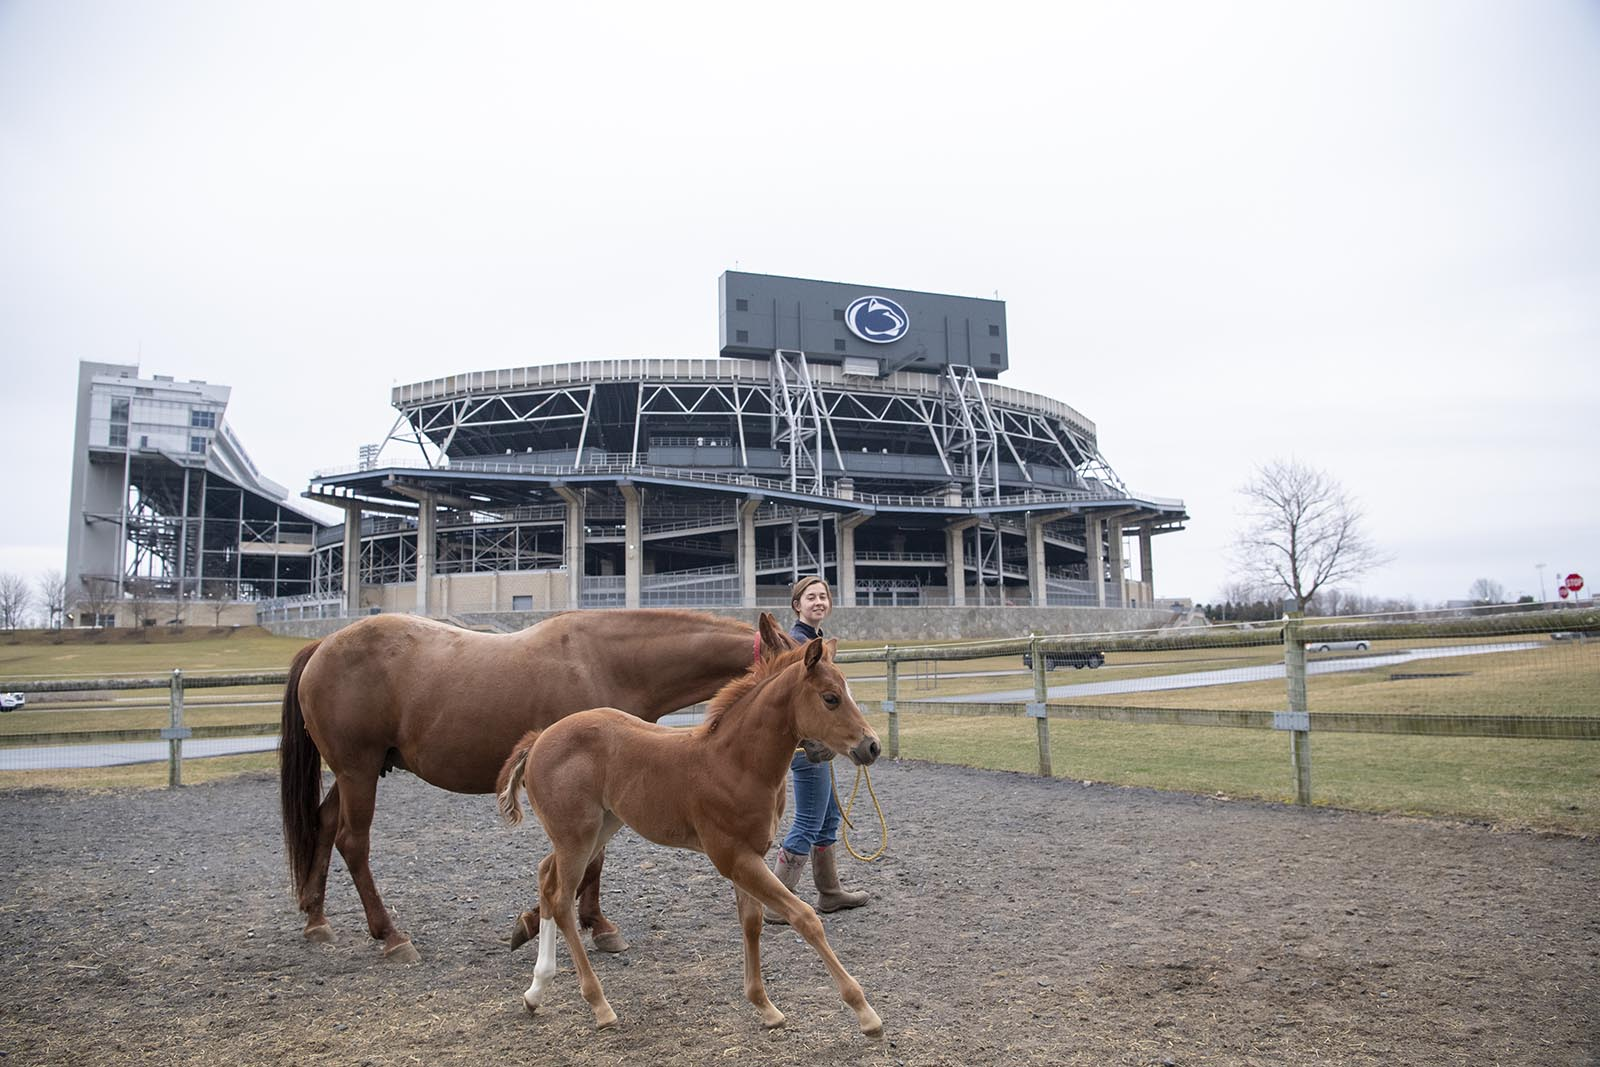 A horse and a foal during ground training.